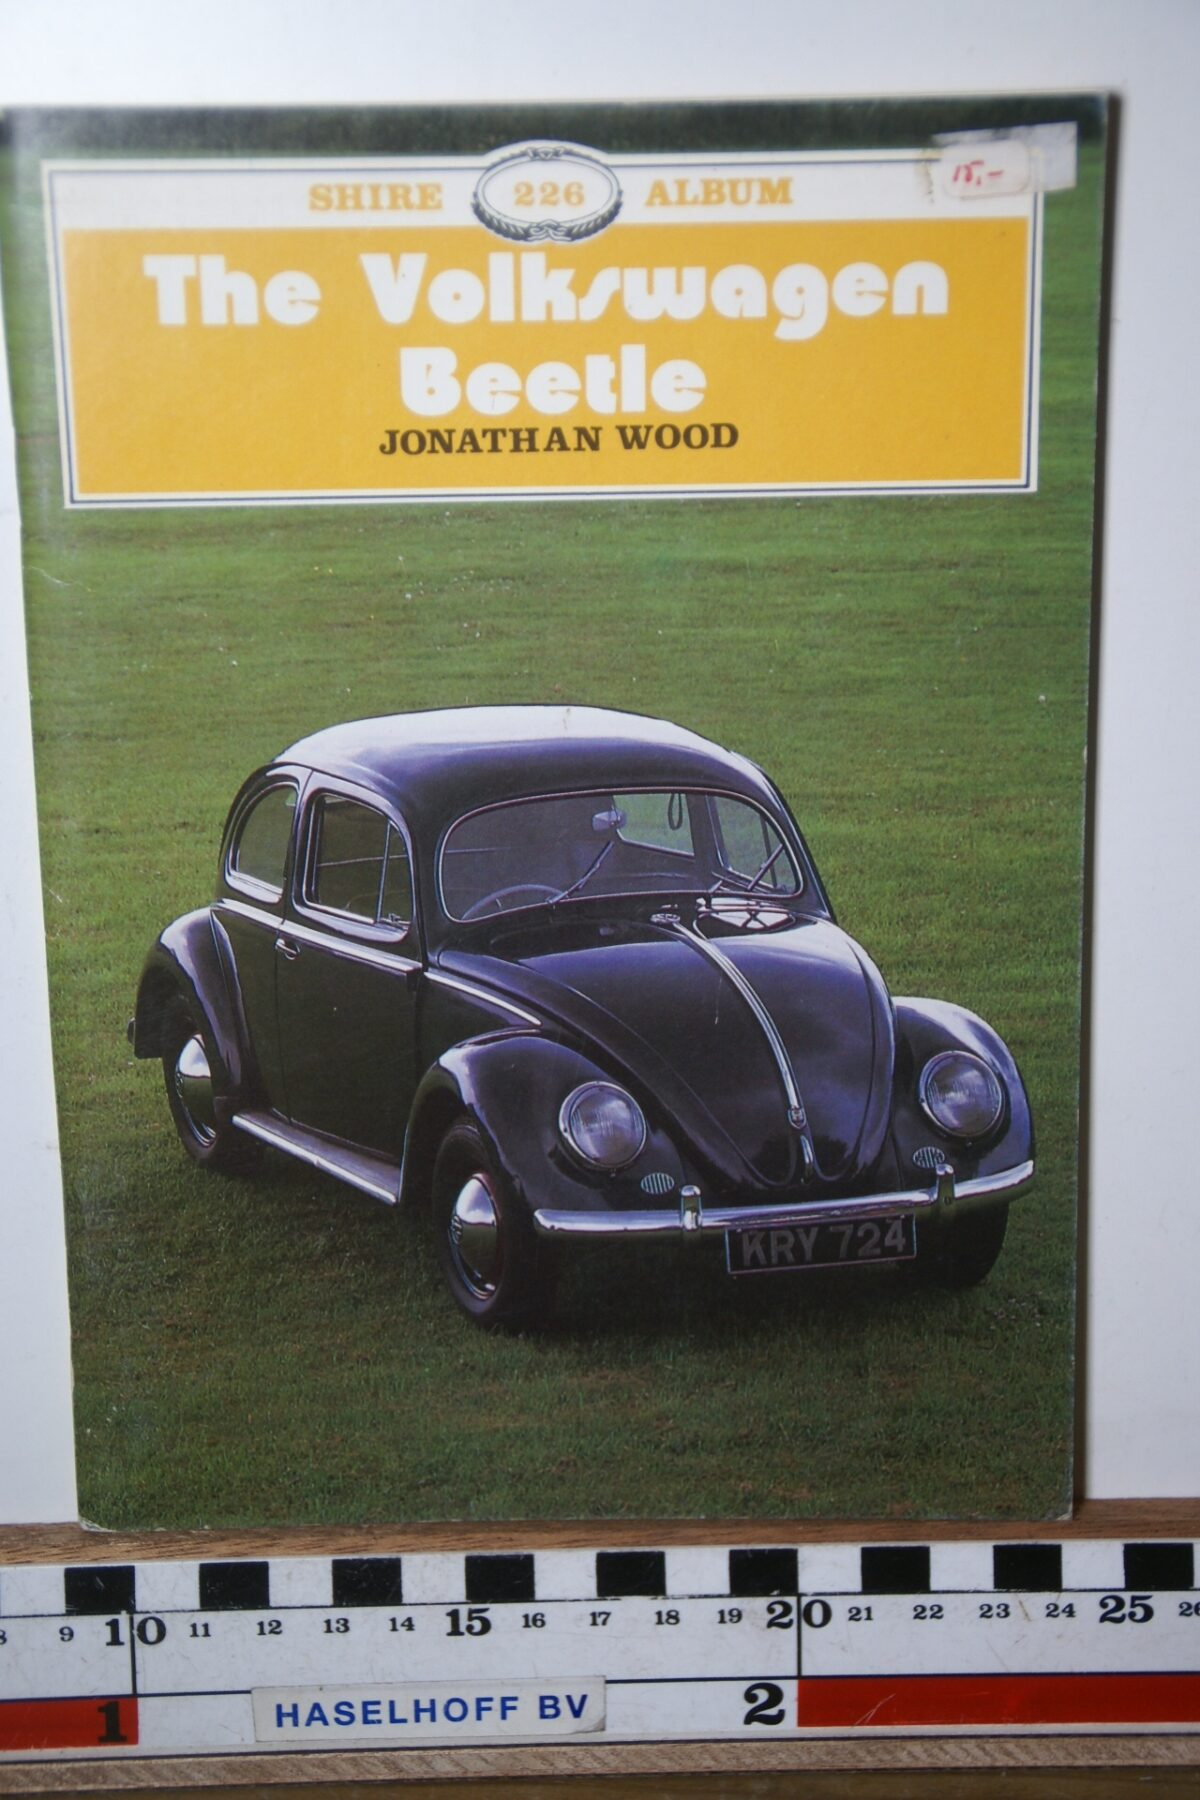 Jonathan Wood The Volkswagen Beetle 180205-3701-0